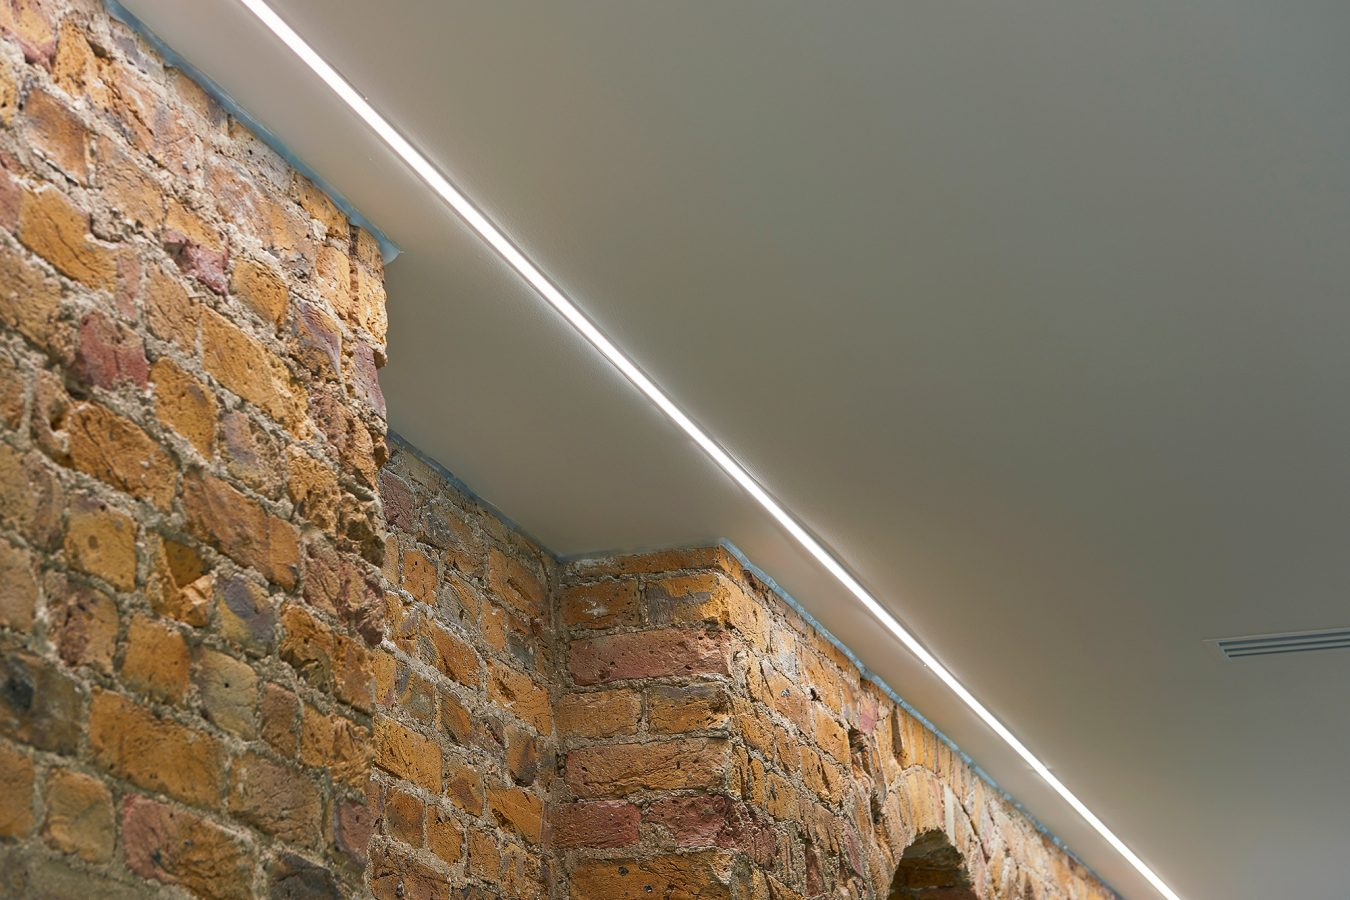 Exposed brickwork, office refurbishment for modern work space and LED lights added to enhance luminosity, near London.,